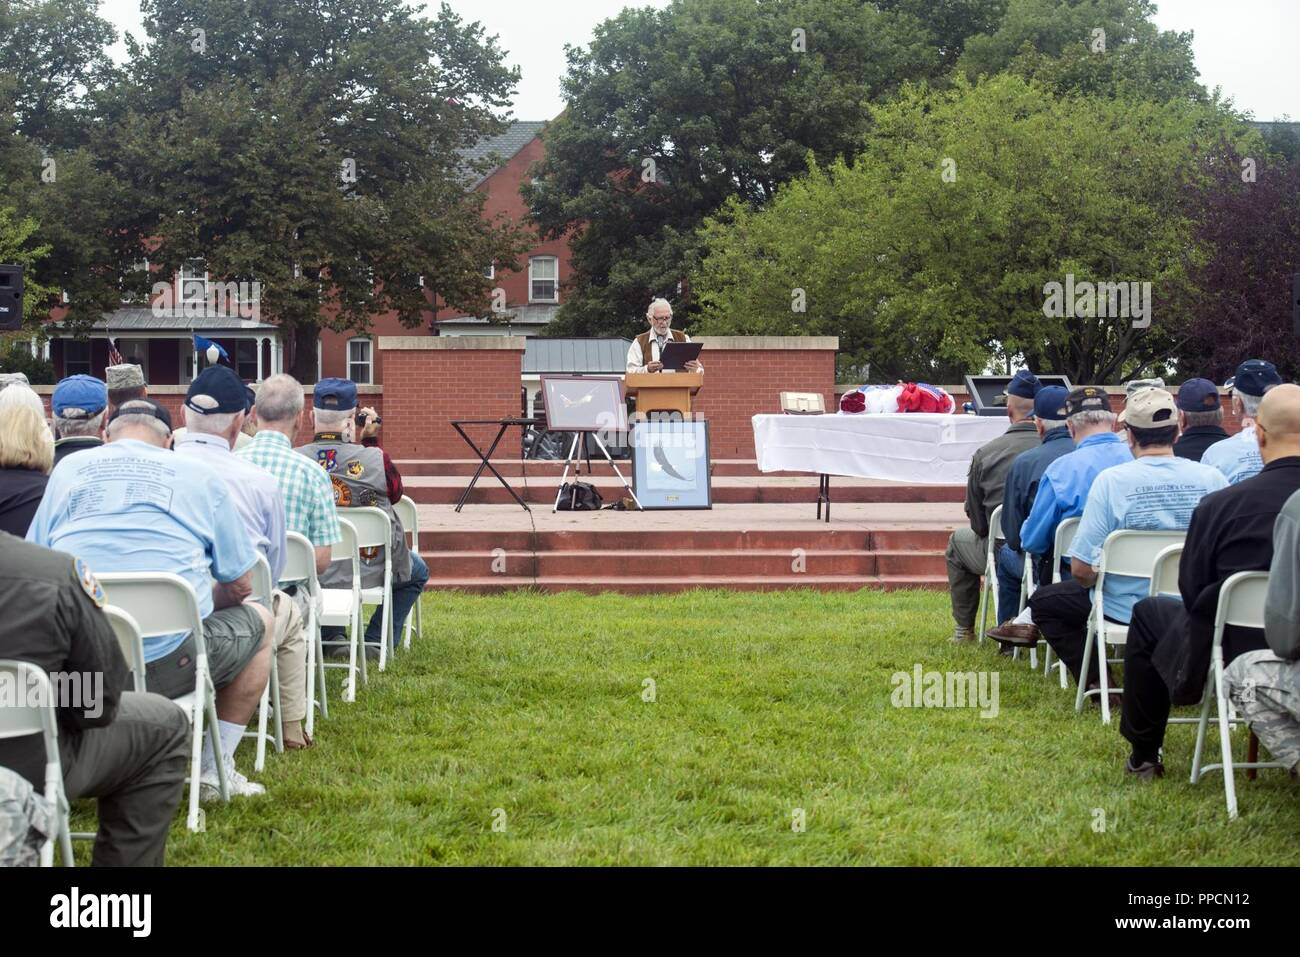 Retired U.S. Air Force Master Sgt. Lonnie Henderson, an intelligence, surveillance and reconnaissance retiree and Prop Wash Gang member, speaks during the 60528 Remembrance Ceremony held Aug. 30, 2018, at Offutt Air Force Base, Nebraska. The ceremony was held to honor the 17 crewmembers who were lost during the Cold War when their C-130, which was modified to fly reconnaissance missions, was shot down. The aircraft's tail number was 60528. The ceremony was attended by members of the Prop Wash Gang, a group of retired Intelligence Surveillance Reconnaissance operators, family members and fellow - Stock Image